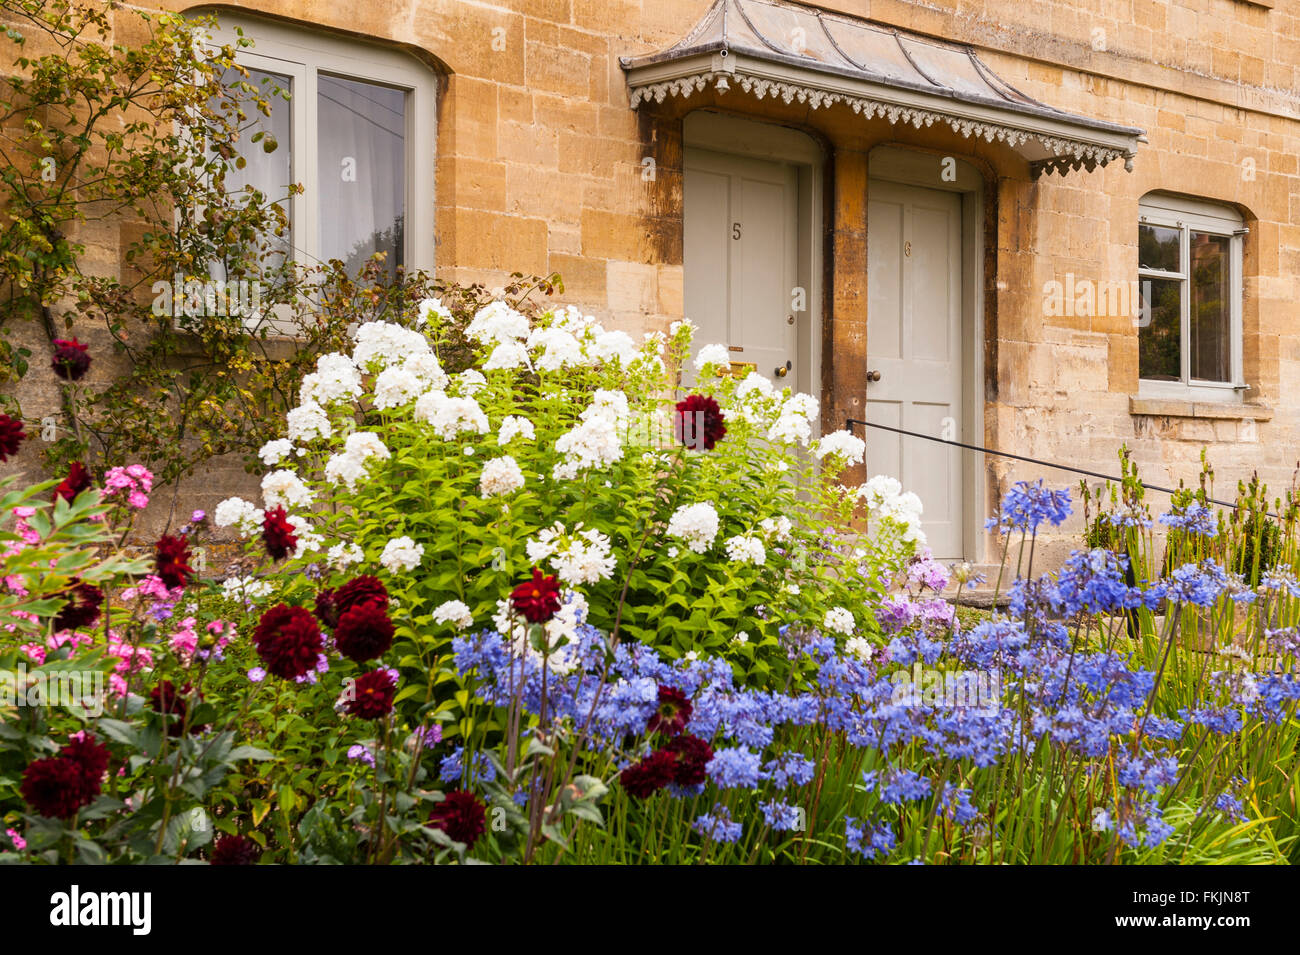 A pair of Cotswold cottages with blooming flowers in the front garden - Stock Image